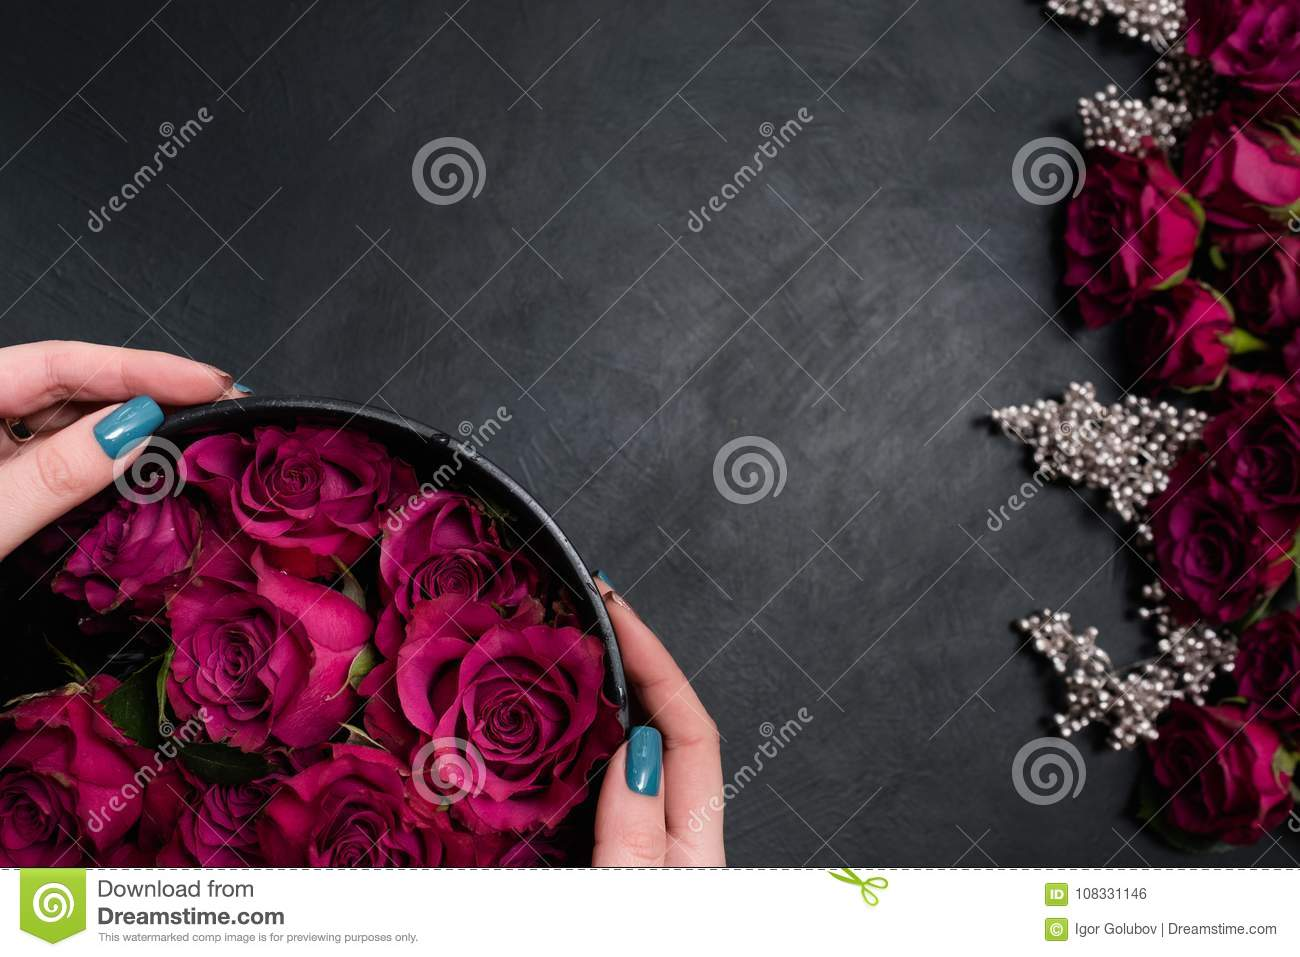 1 620 Burgundy Wedding Flowers Photos Free Royalty Free Stock Photos From Dreamstime